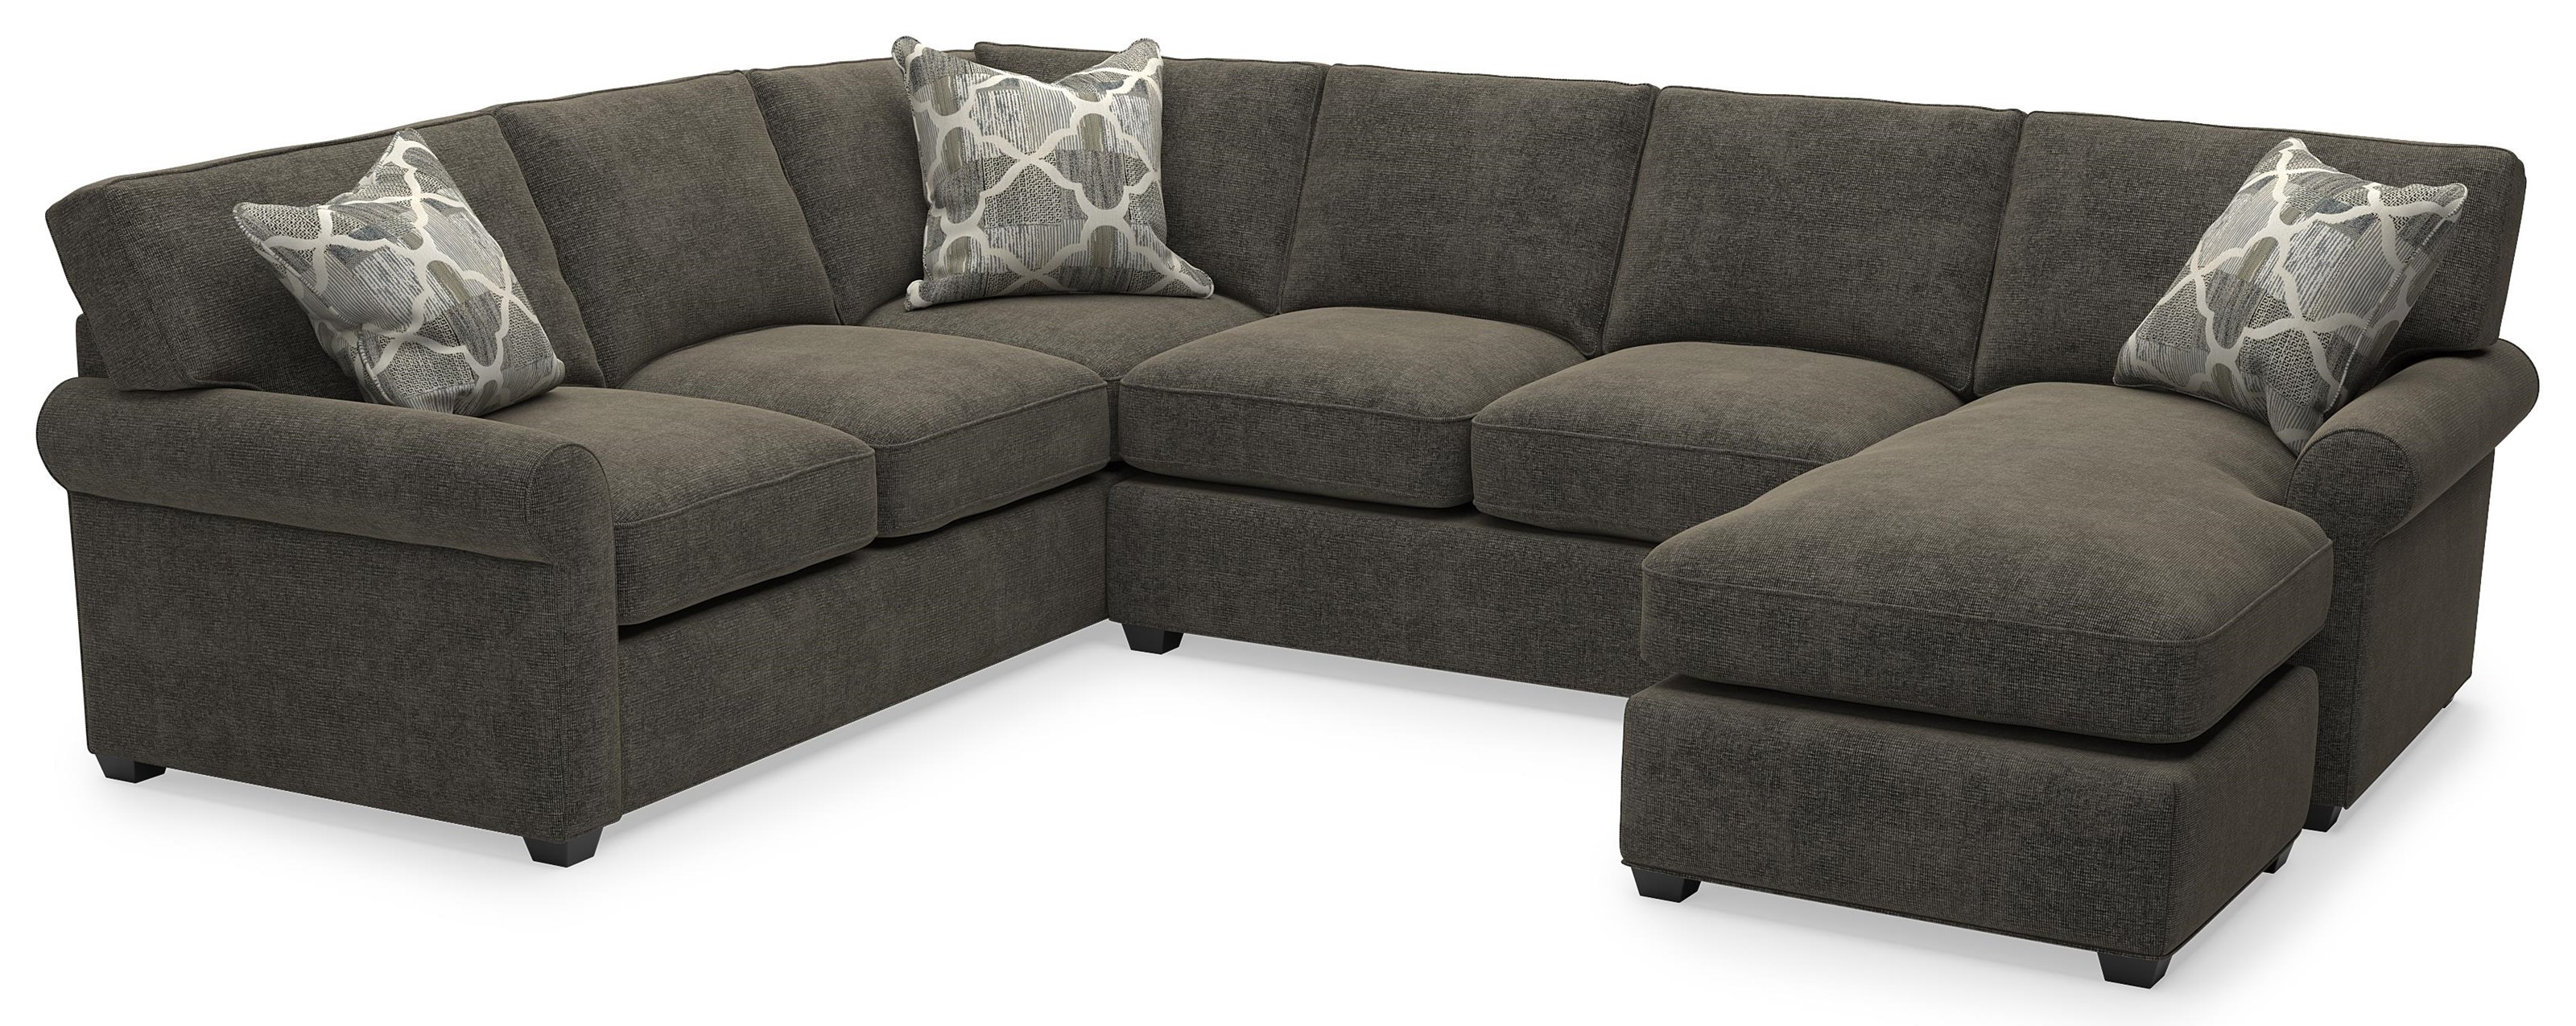 225 Asa Transitional 2 Piece Sectional w/Chaise by Sunset Home at Walker's Furniture